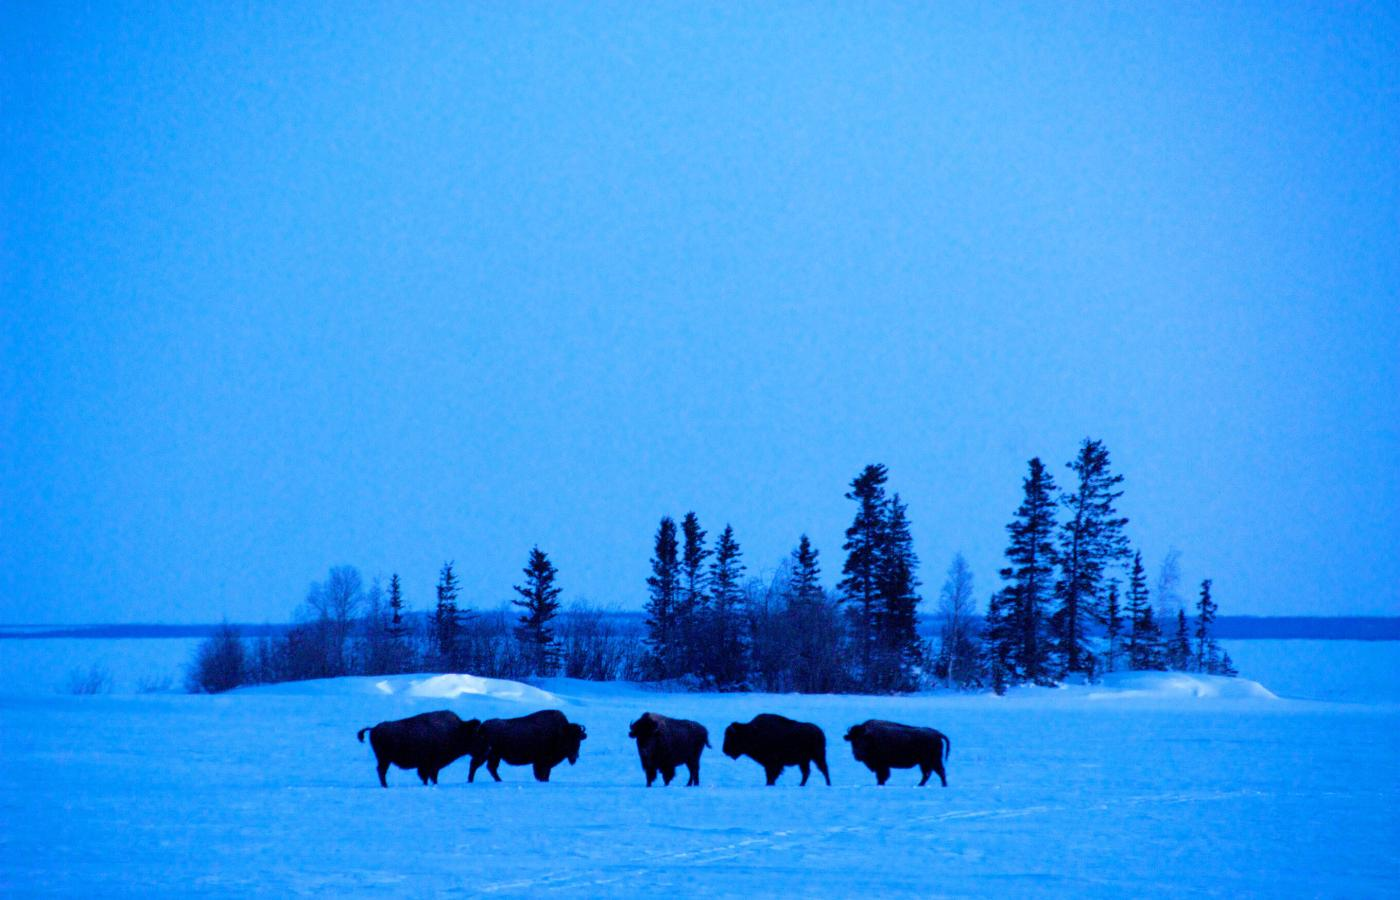 Wild bison on Great Slave Lake, in Canada's Northwest Territories